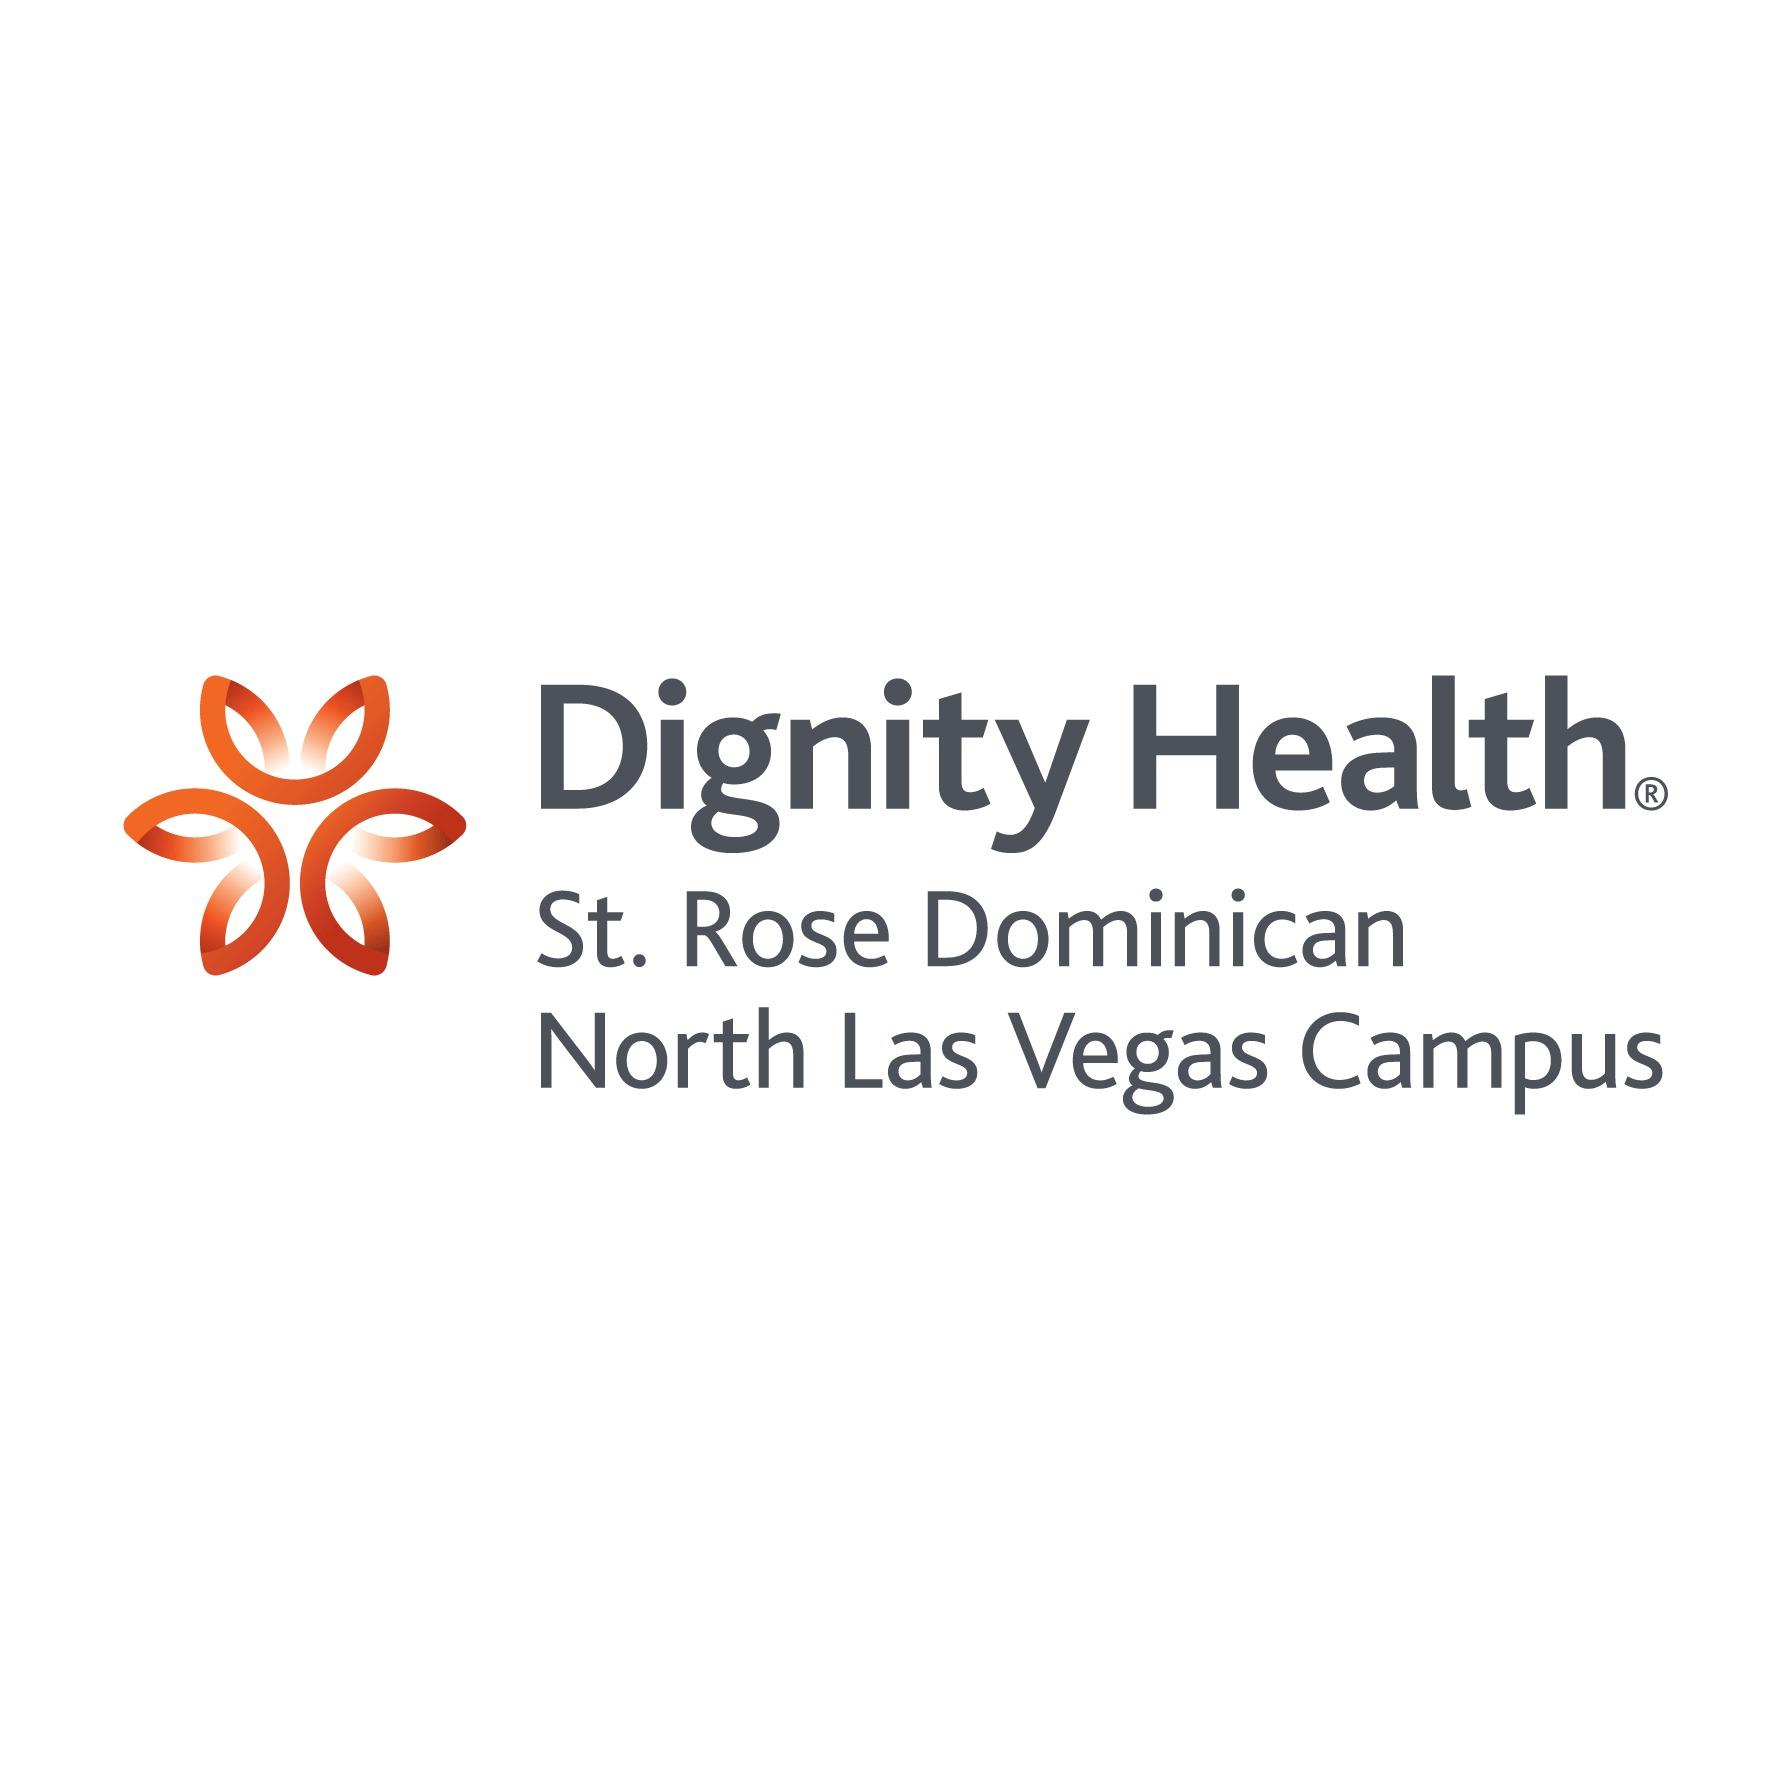 Dignity Health - St. Rose Dominican Hospital, North Las Vegas, NV Campus